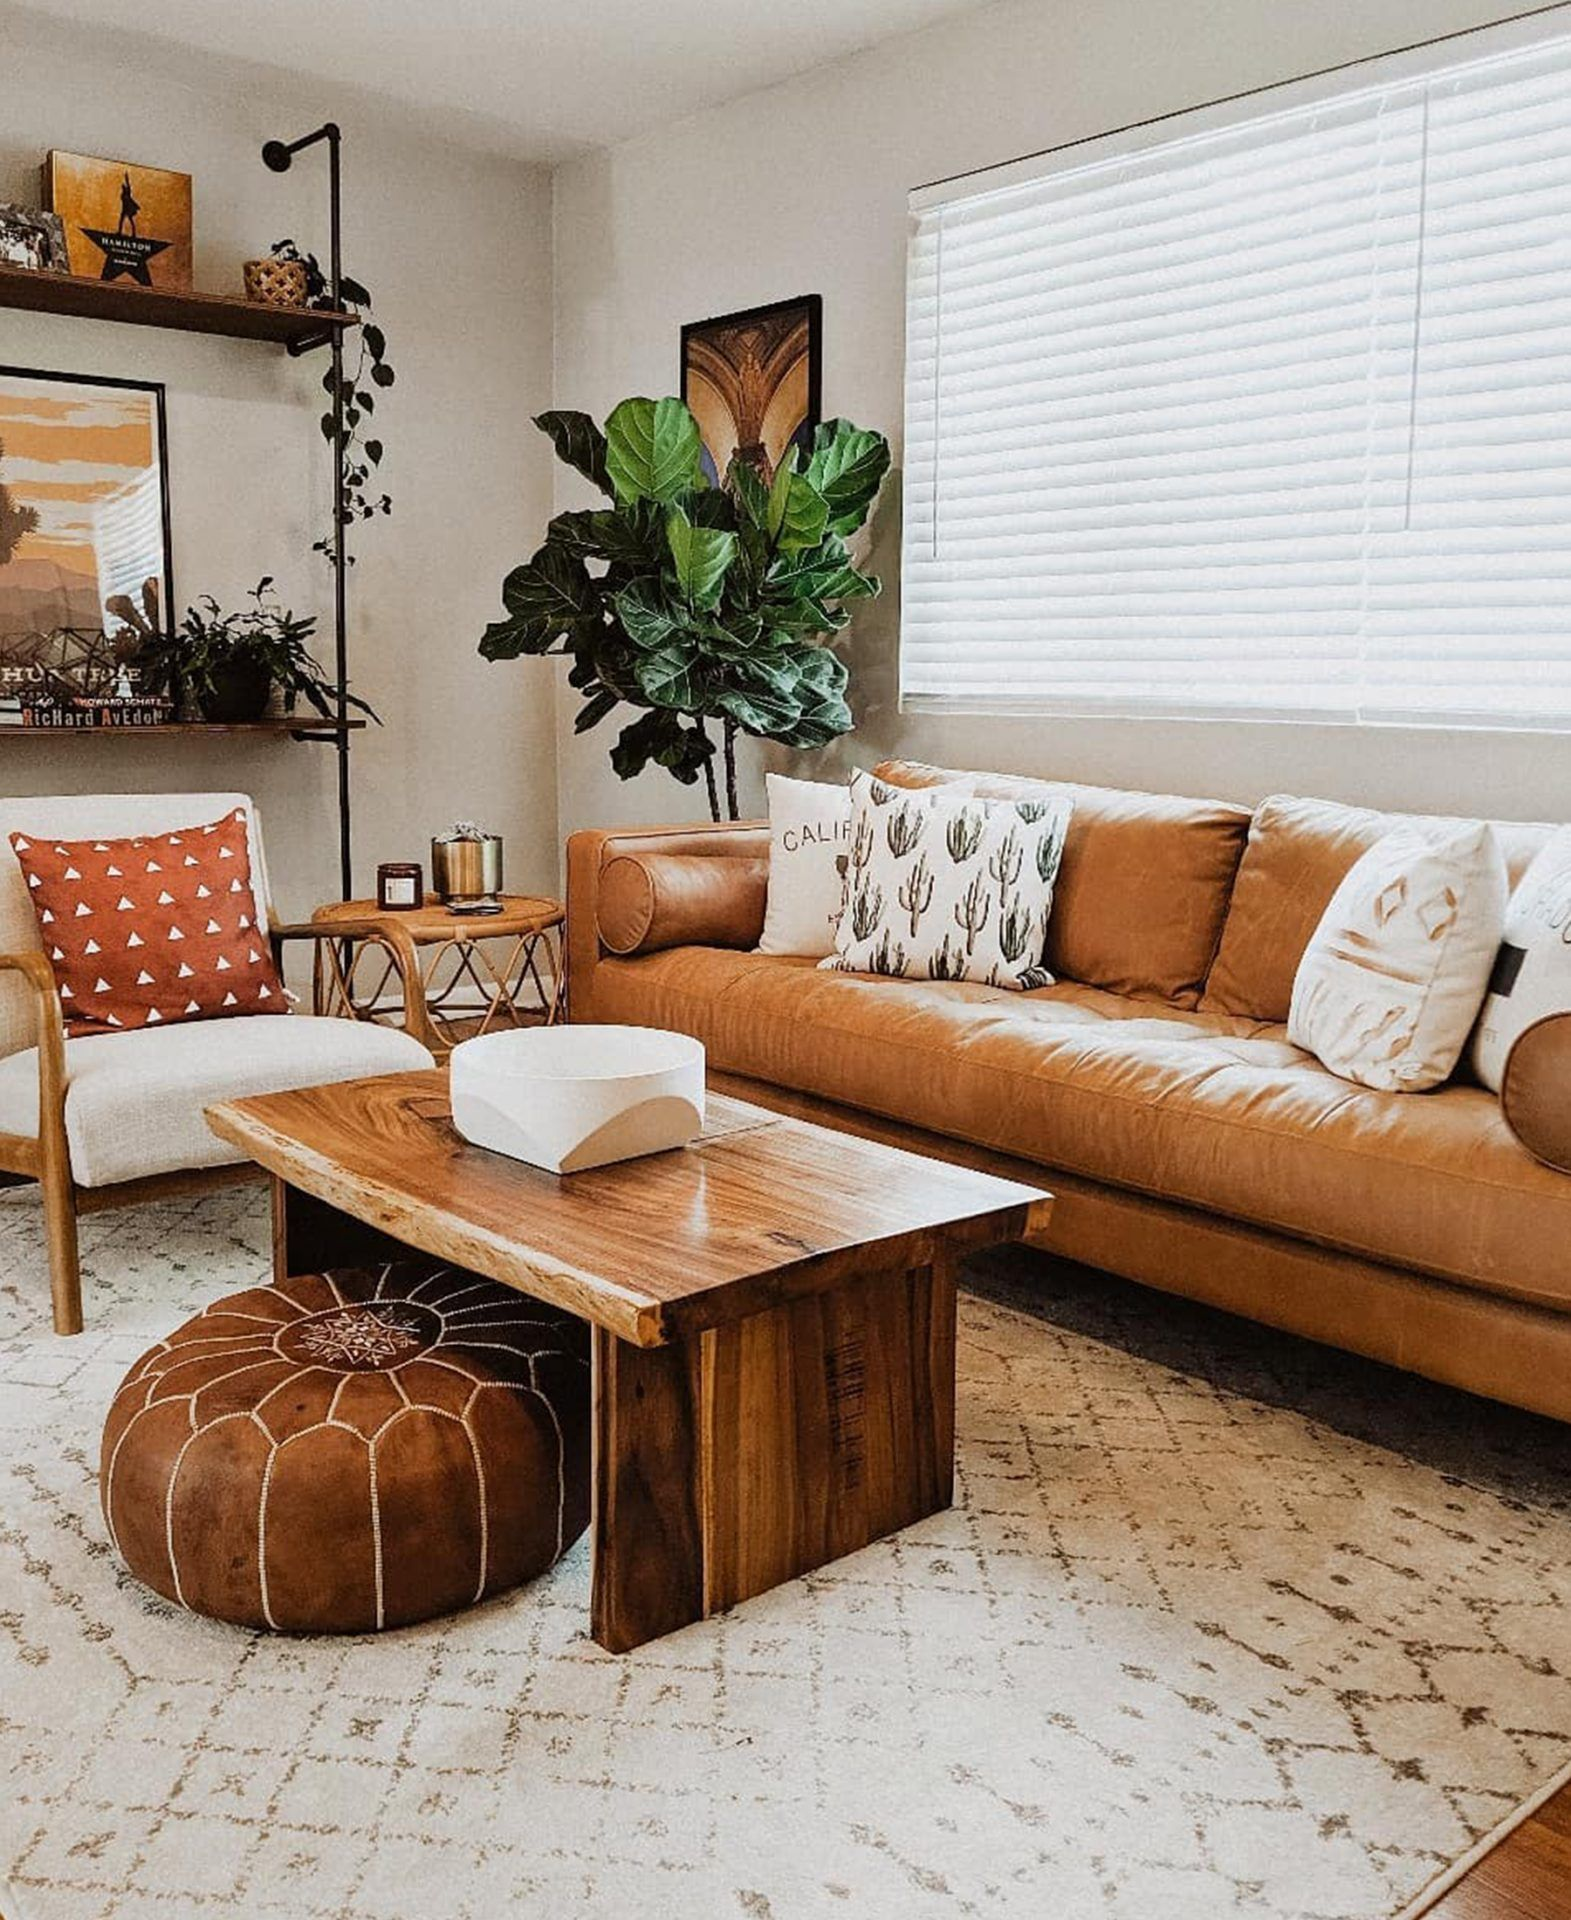 Lizzy Powers Design Article Leather Sofa In Boho Living Room Living Room Leather Brown Couch Living Room Leather Sofa Living Room